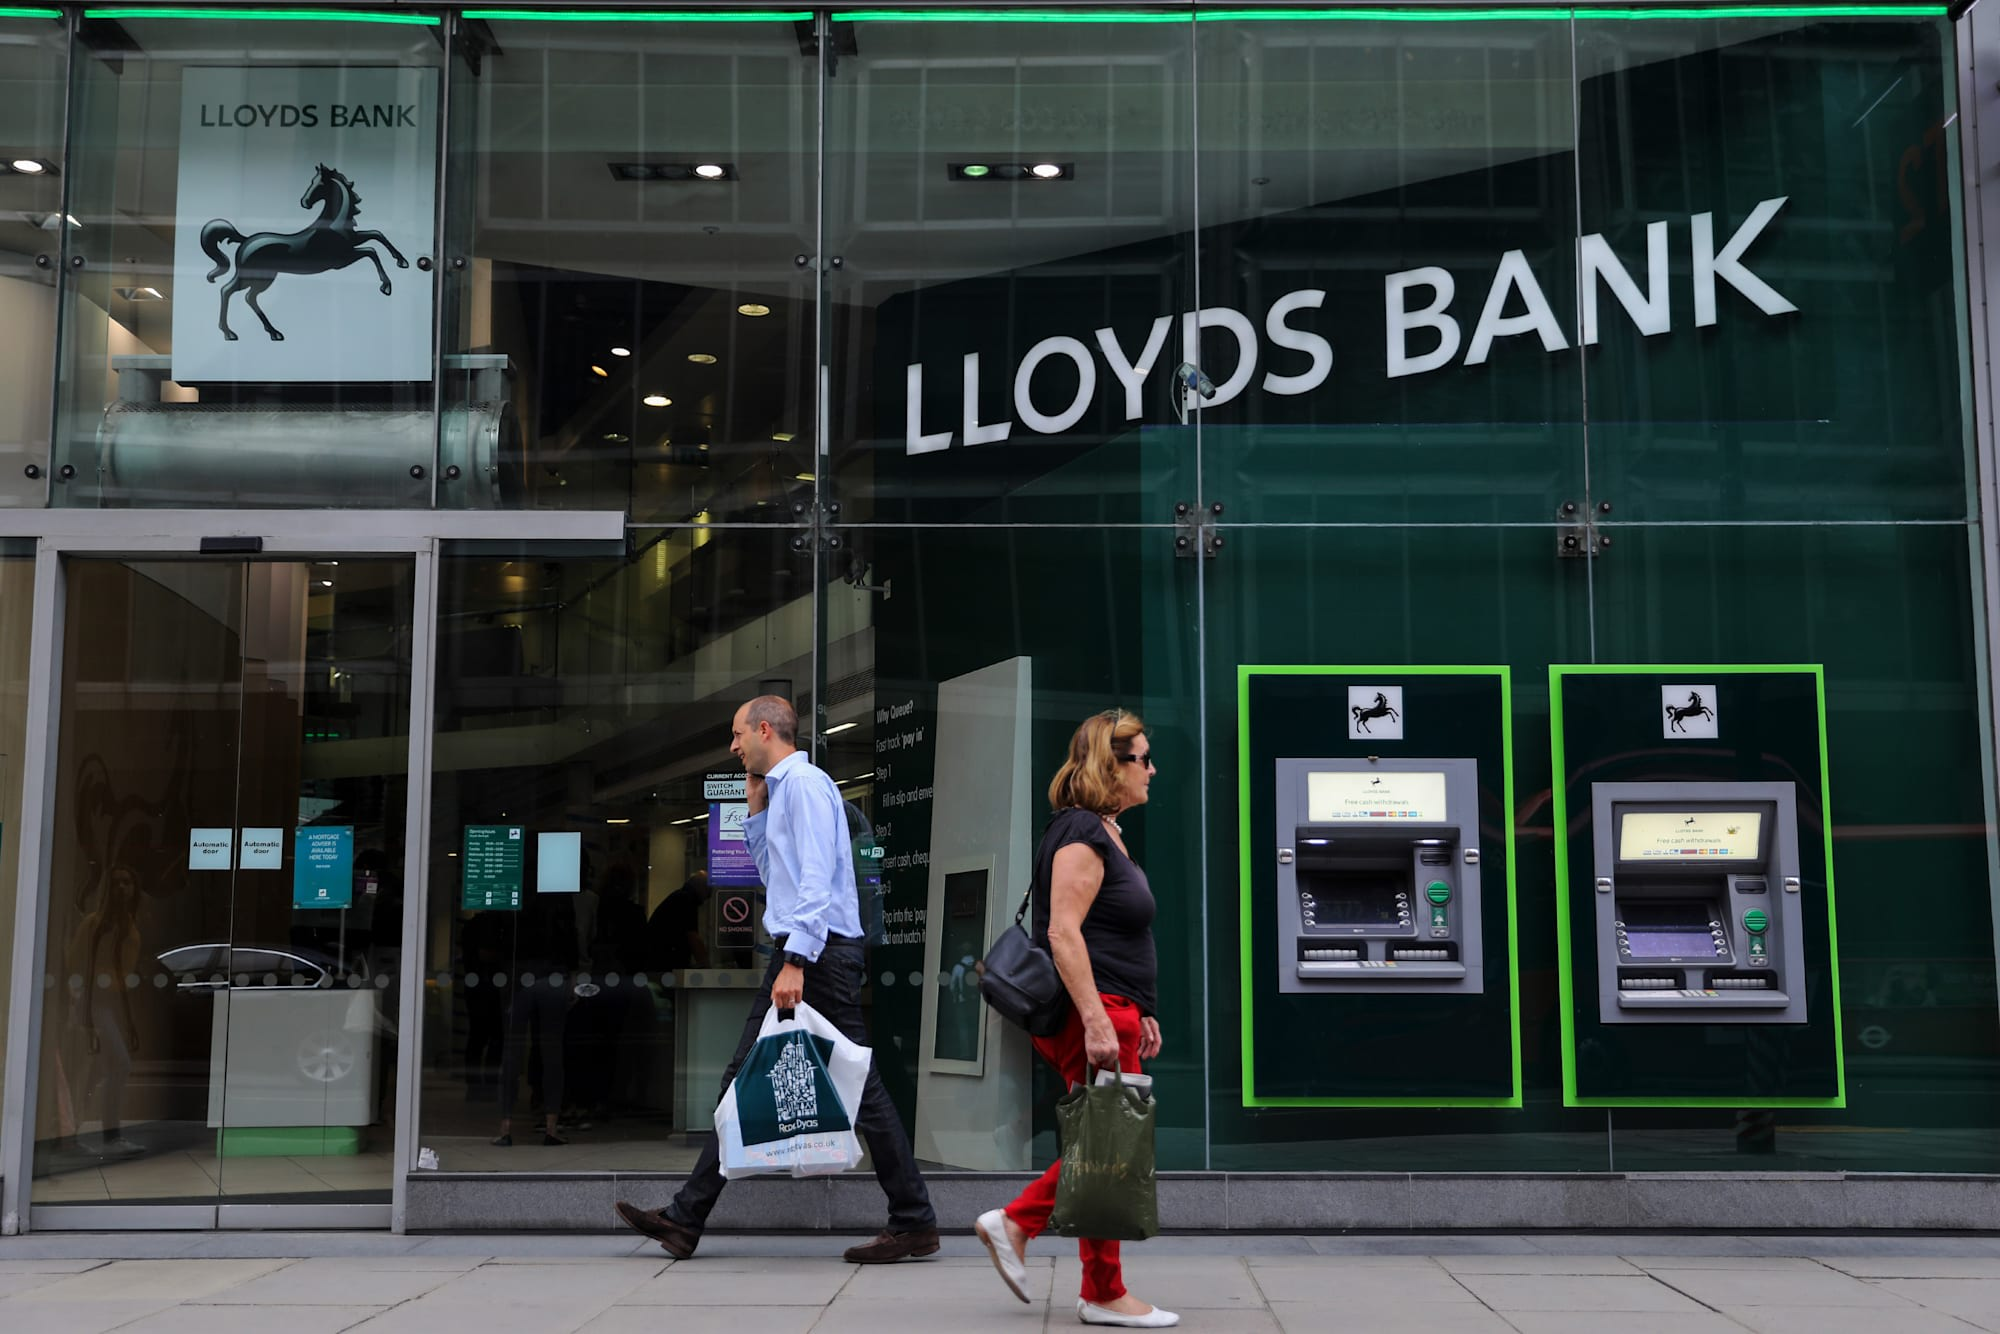 Uk banks ban bitcoin purchases with credit cards bloomberg via getty images colourmoves